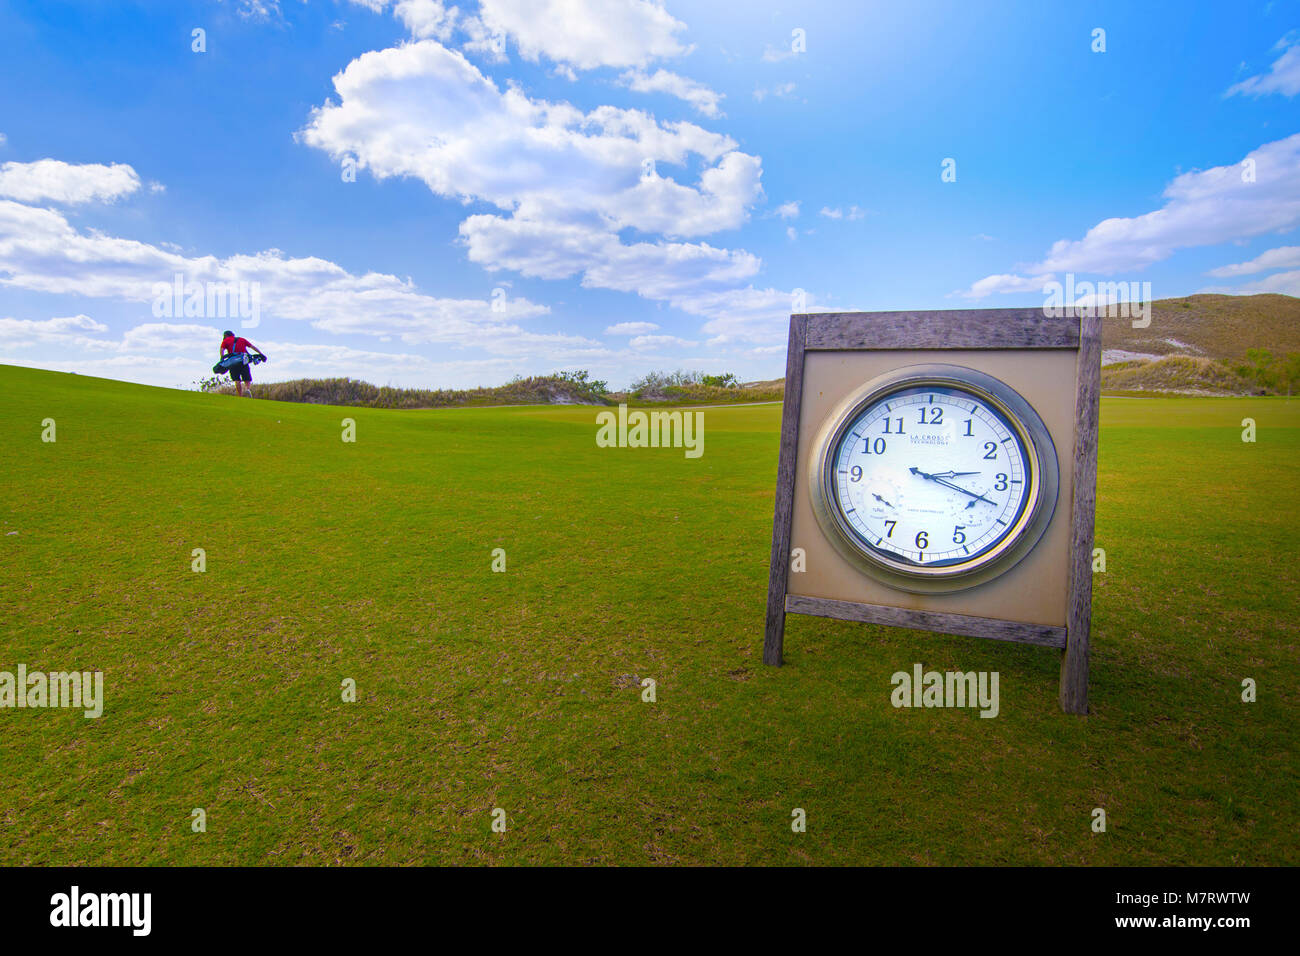 Tee Time - A clock on a golf course in Florida. - Stock Image